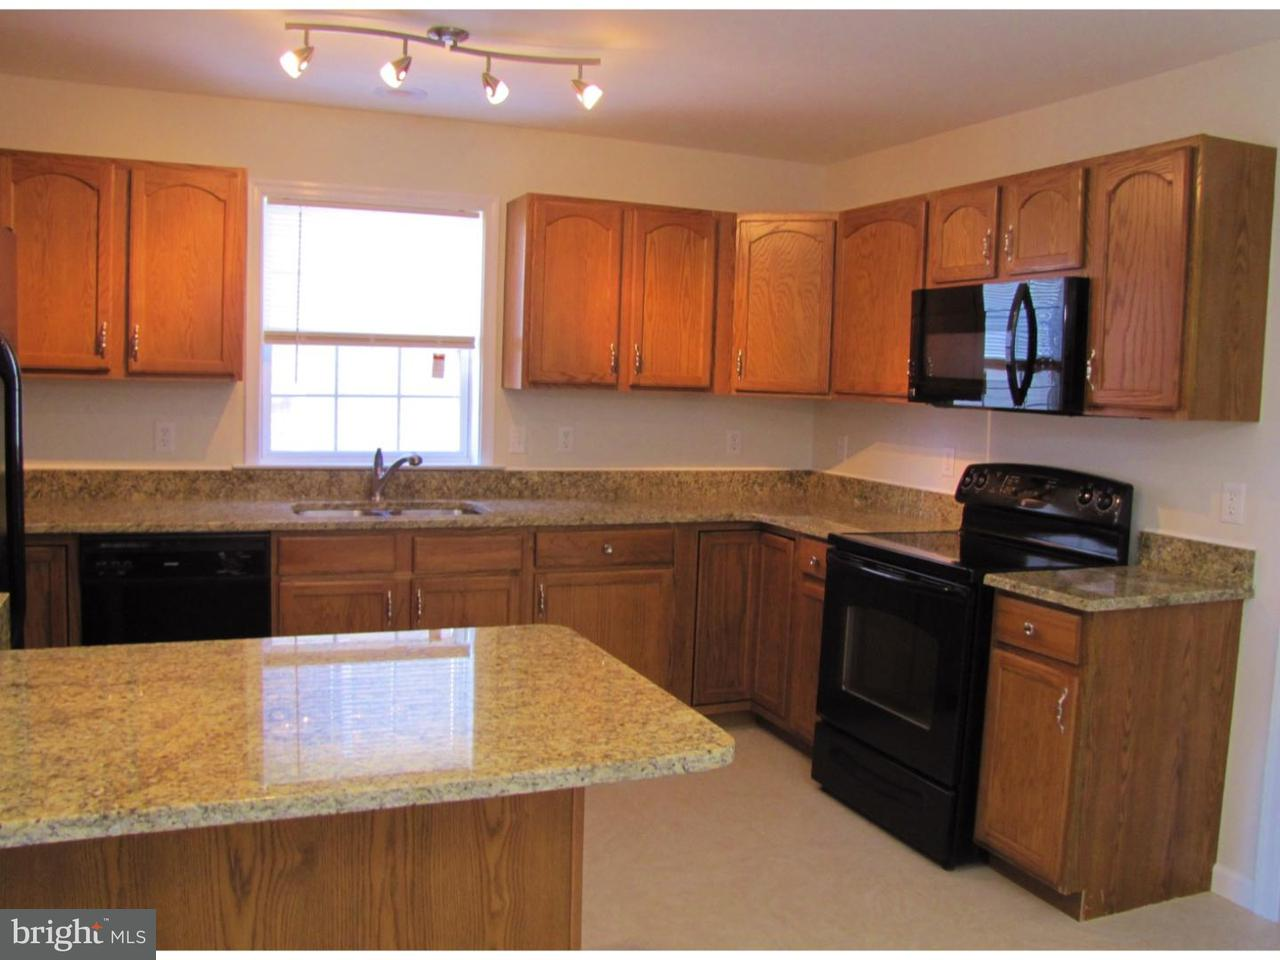 427 W Mulberry Kennett Square, PA 19348